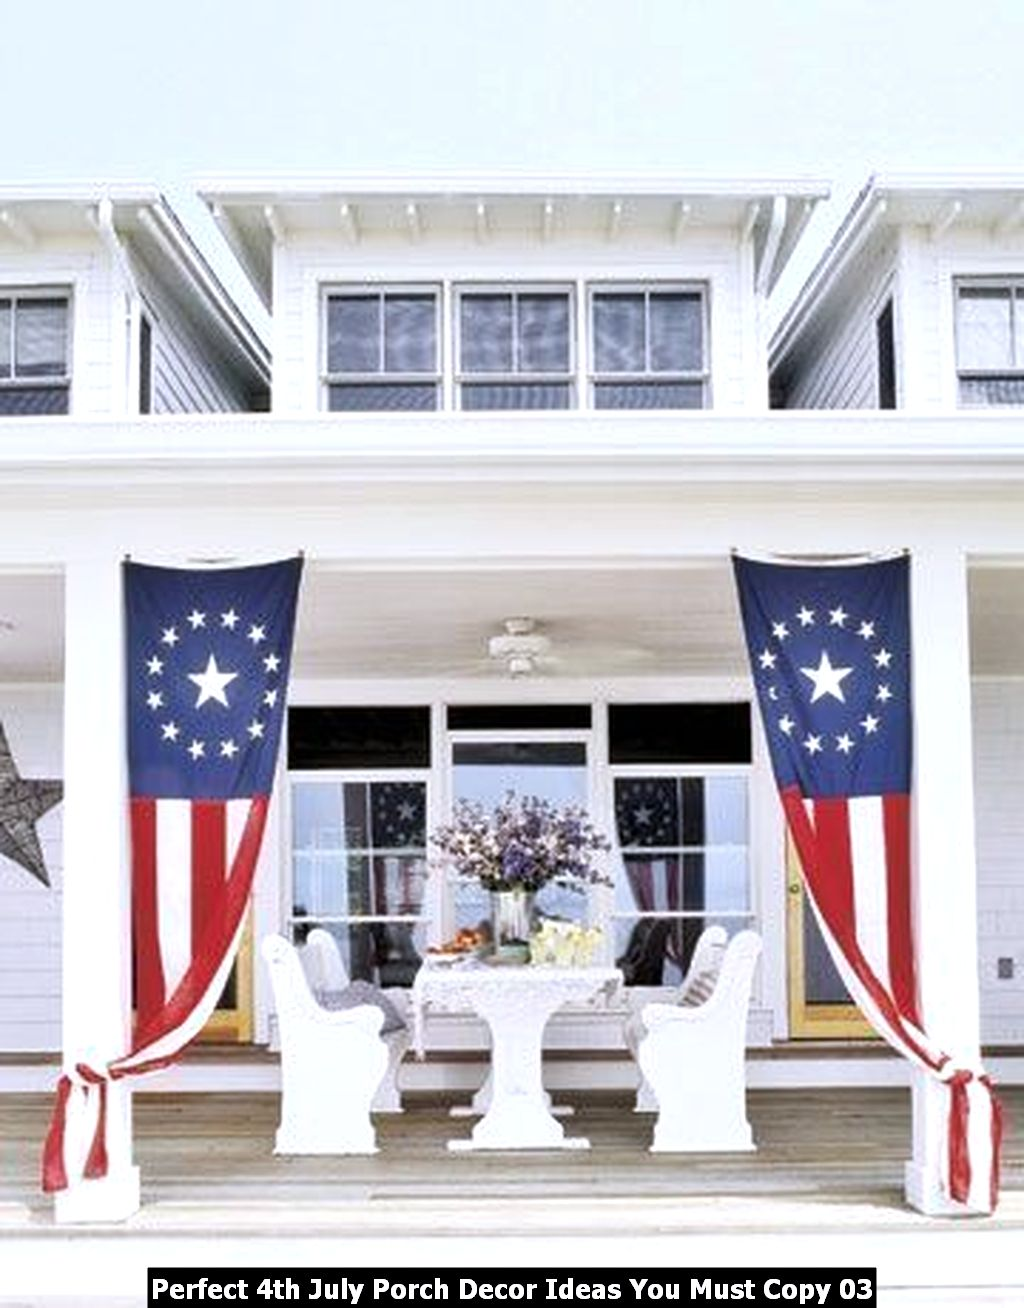 Perfect 4th July Porch Decor Ideas You Must Copy 03